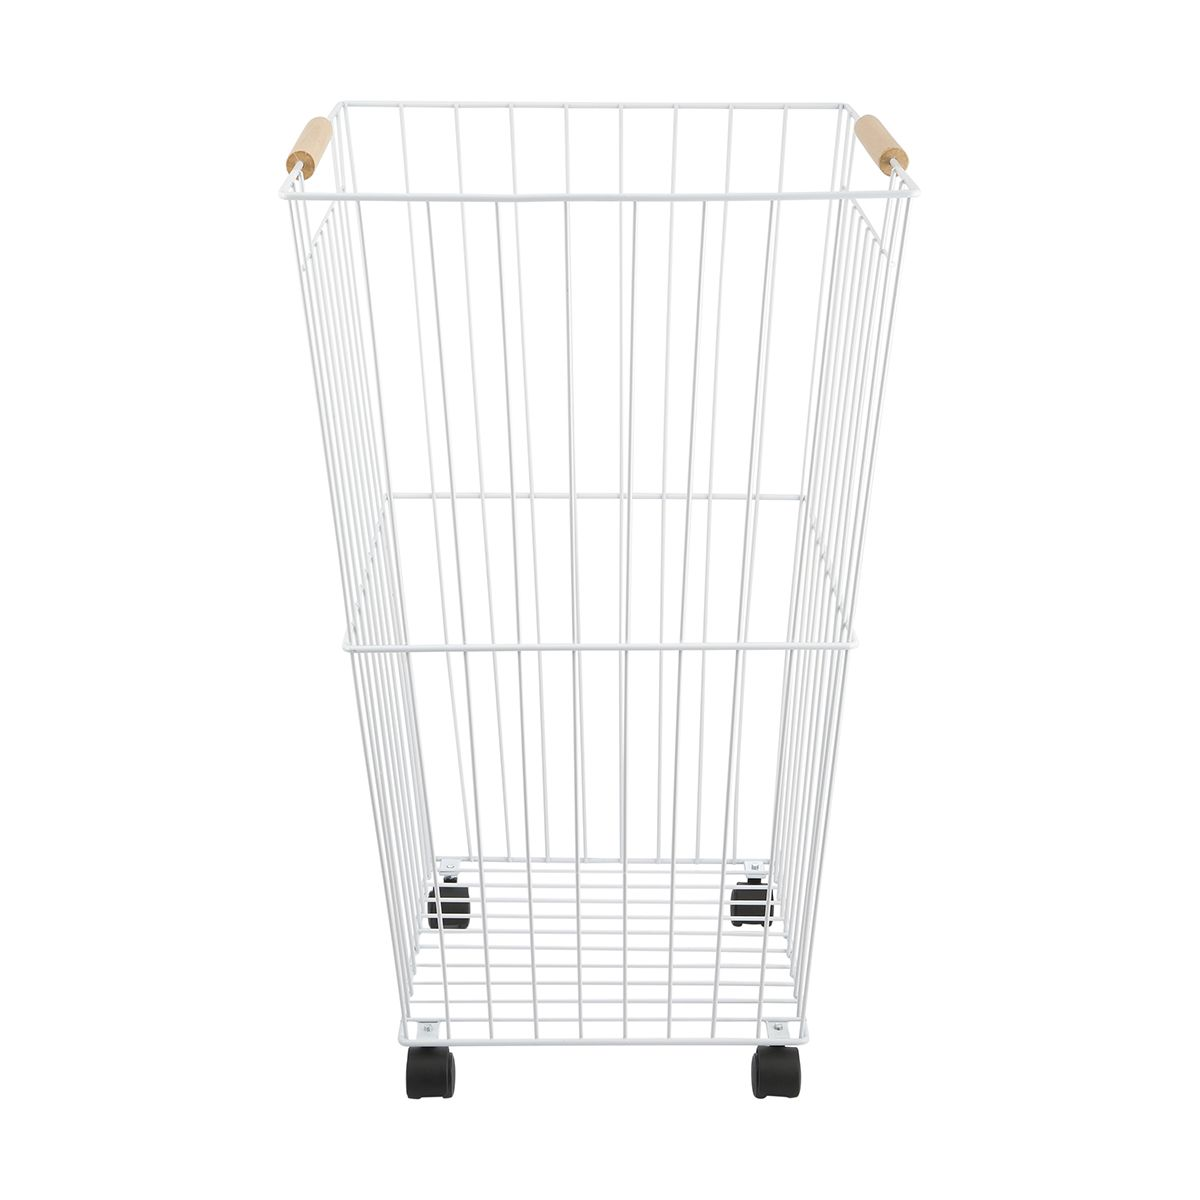 Laundry Hamper With Wheels Kmart Laundry Hamper With